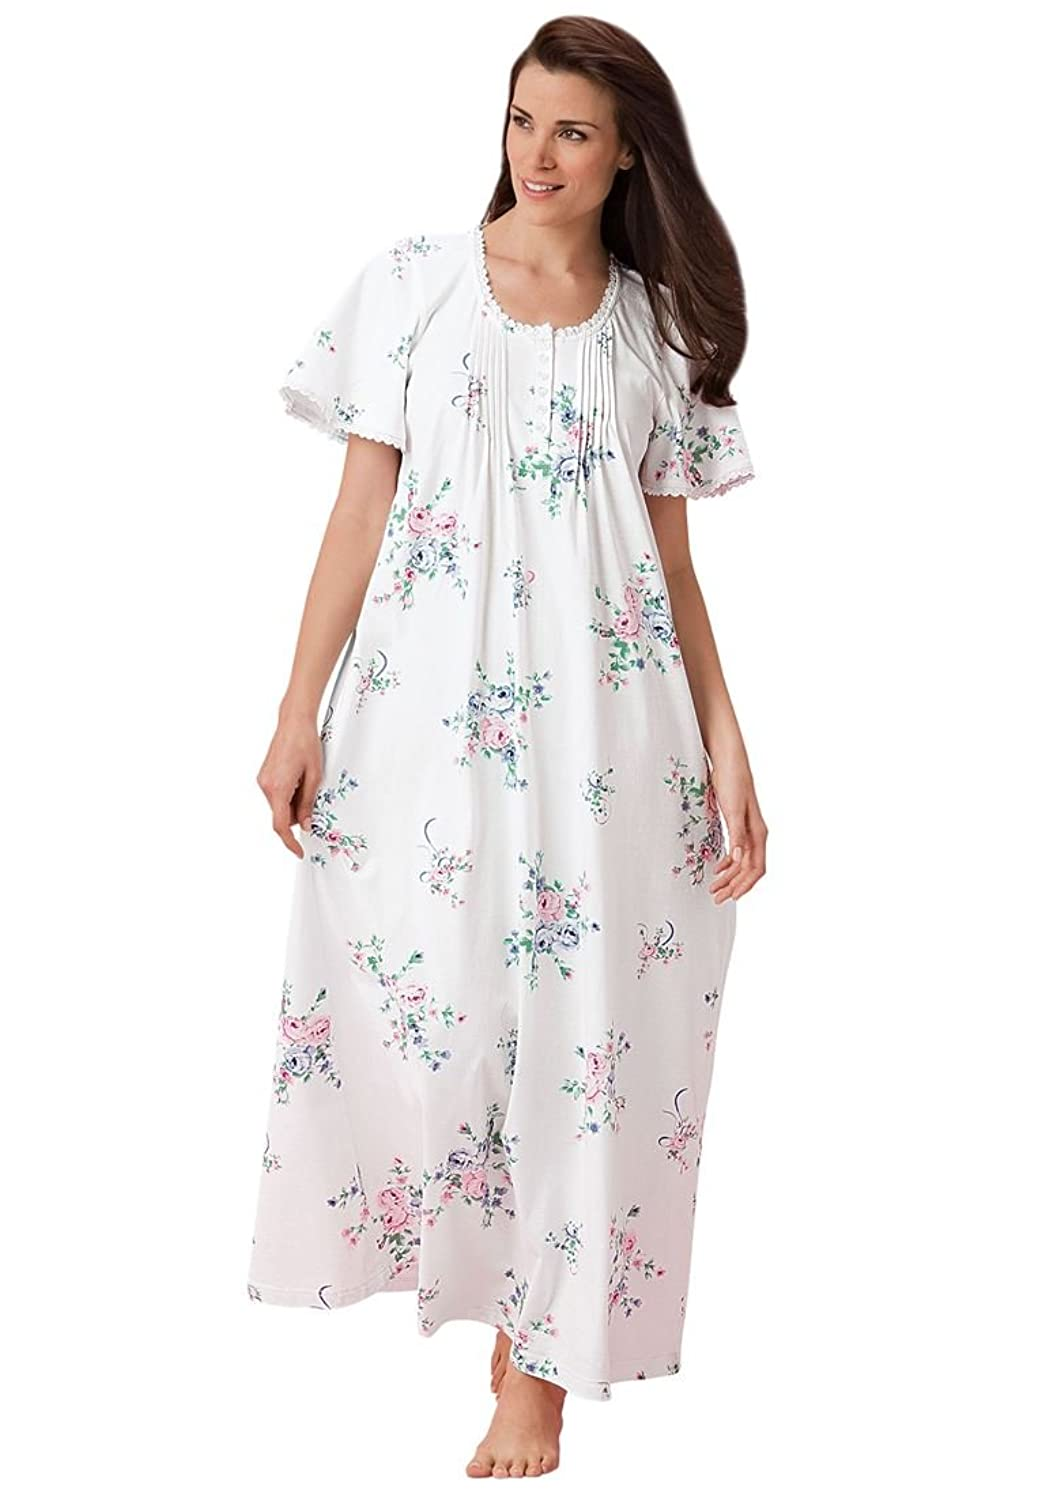 Only Necessities Women's Plus Size Pintucked Floral Long Gown